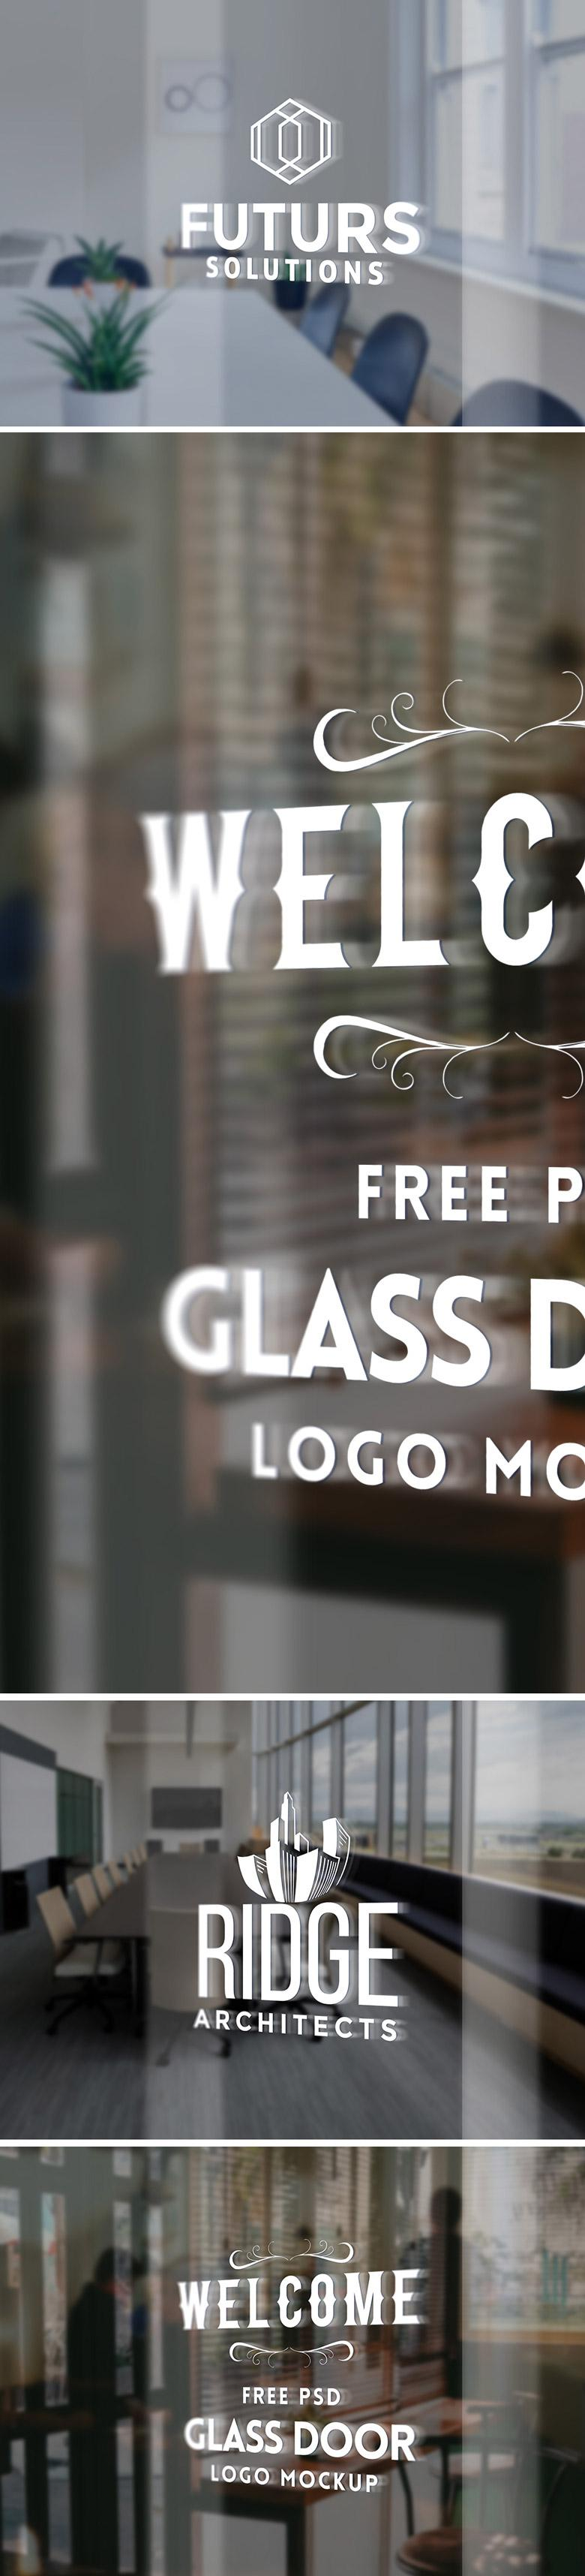 Glass Door Logo Mockup